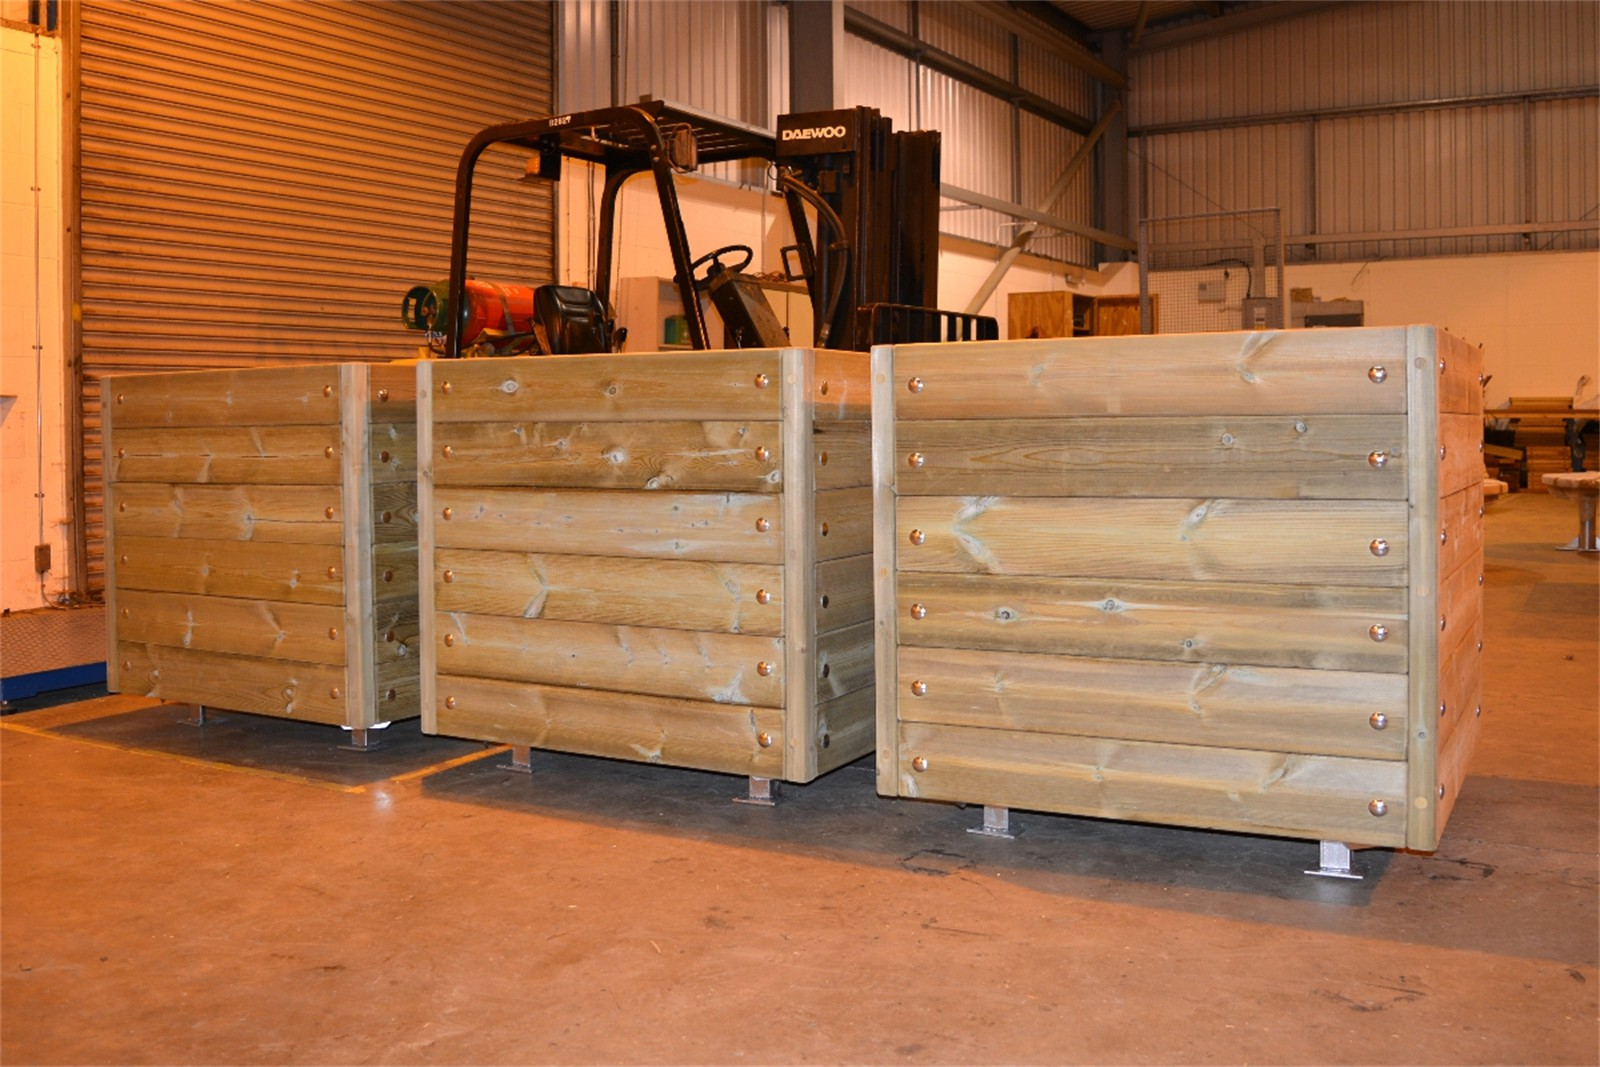 43p16 - Mews movable planters with steel frame in manufacture